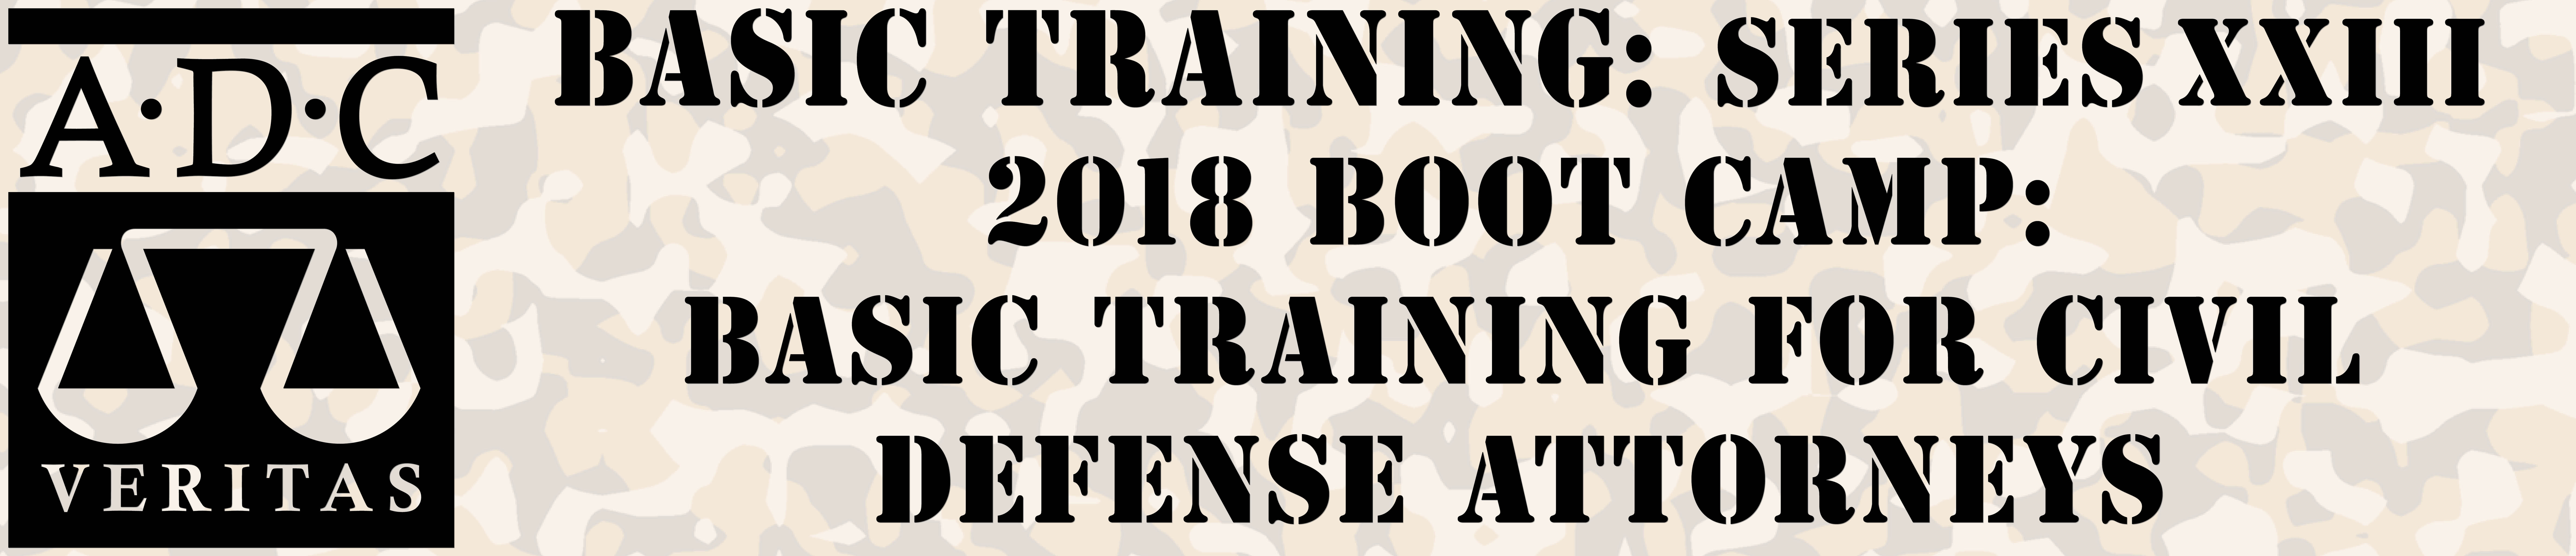 ADC 2018 Basic Training